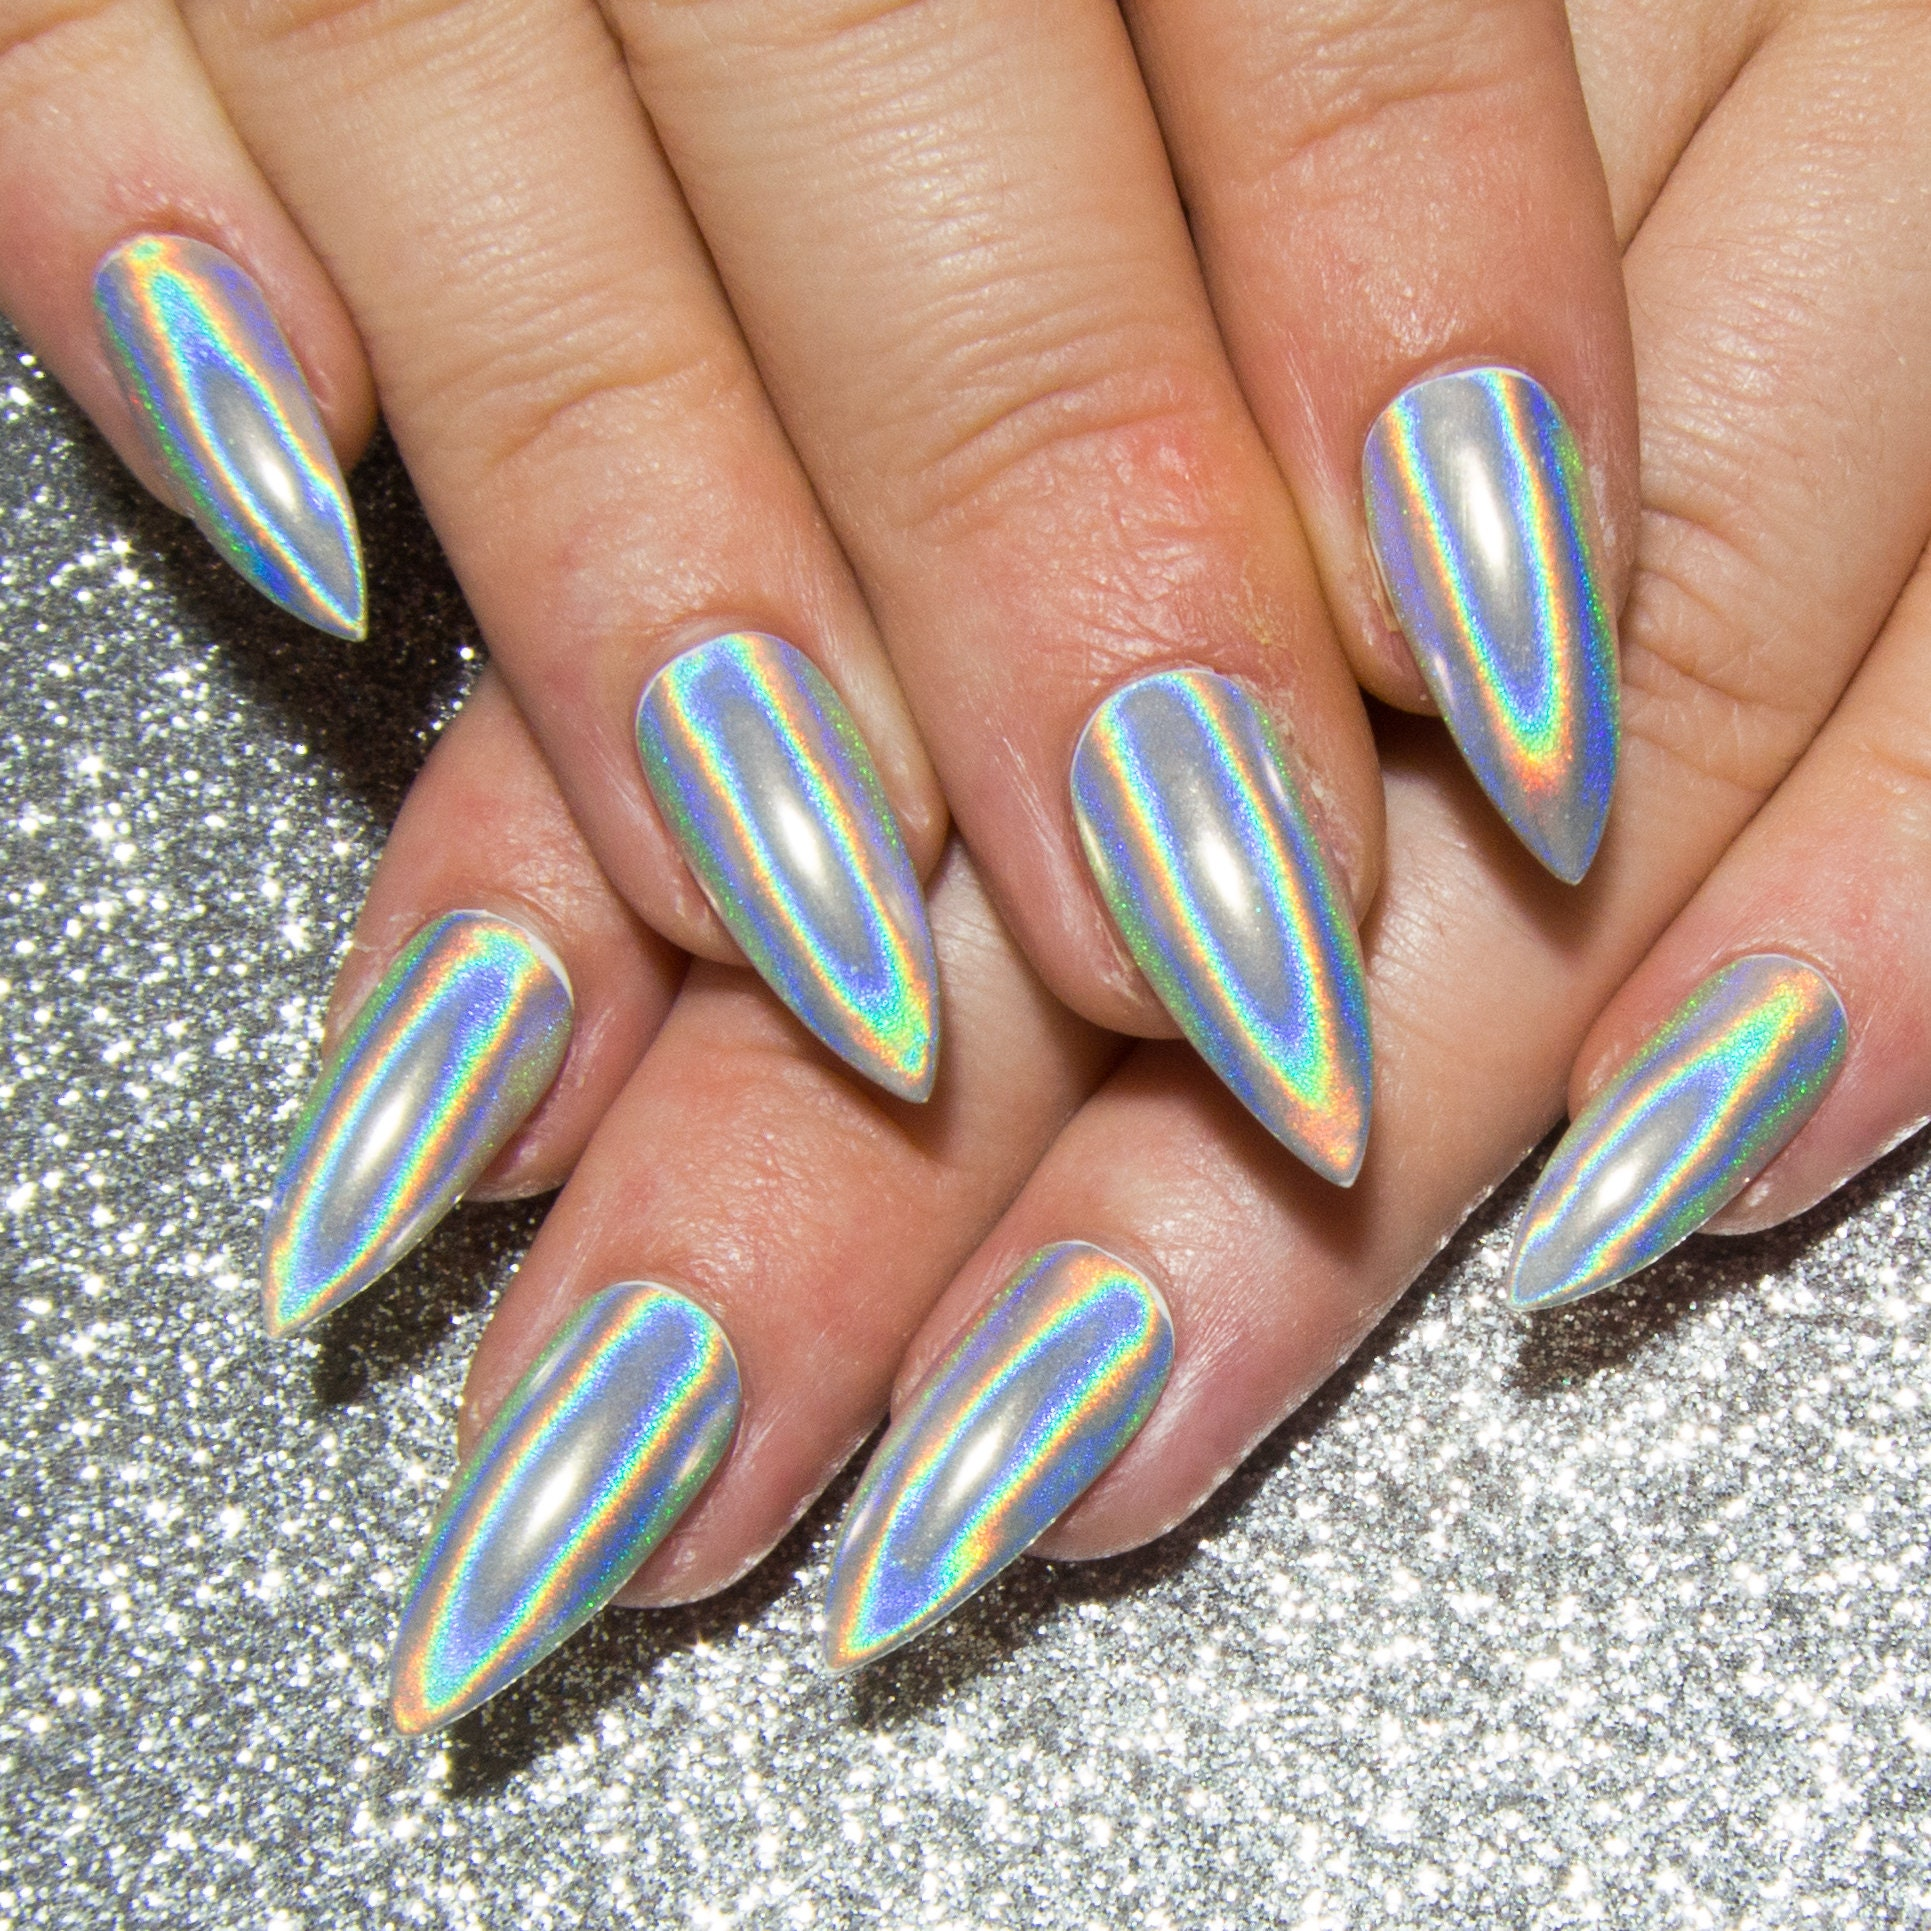 Fake Nails: Holographic Chrome Nails Stiletto Acrylic Nails Mirror Gel